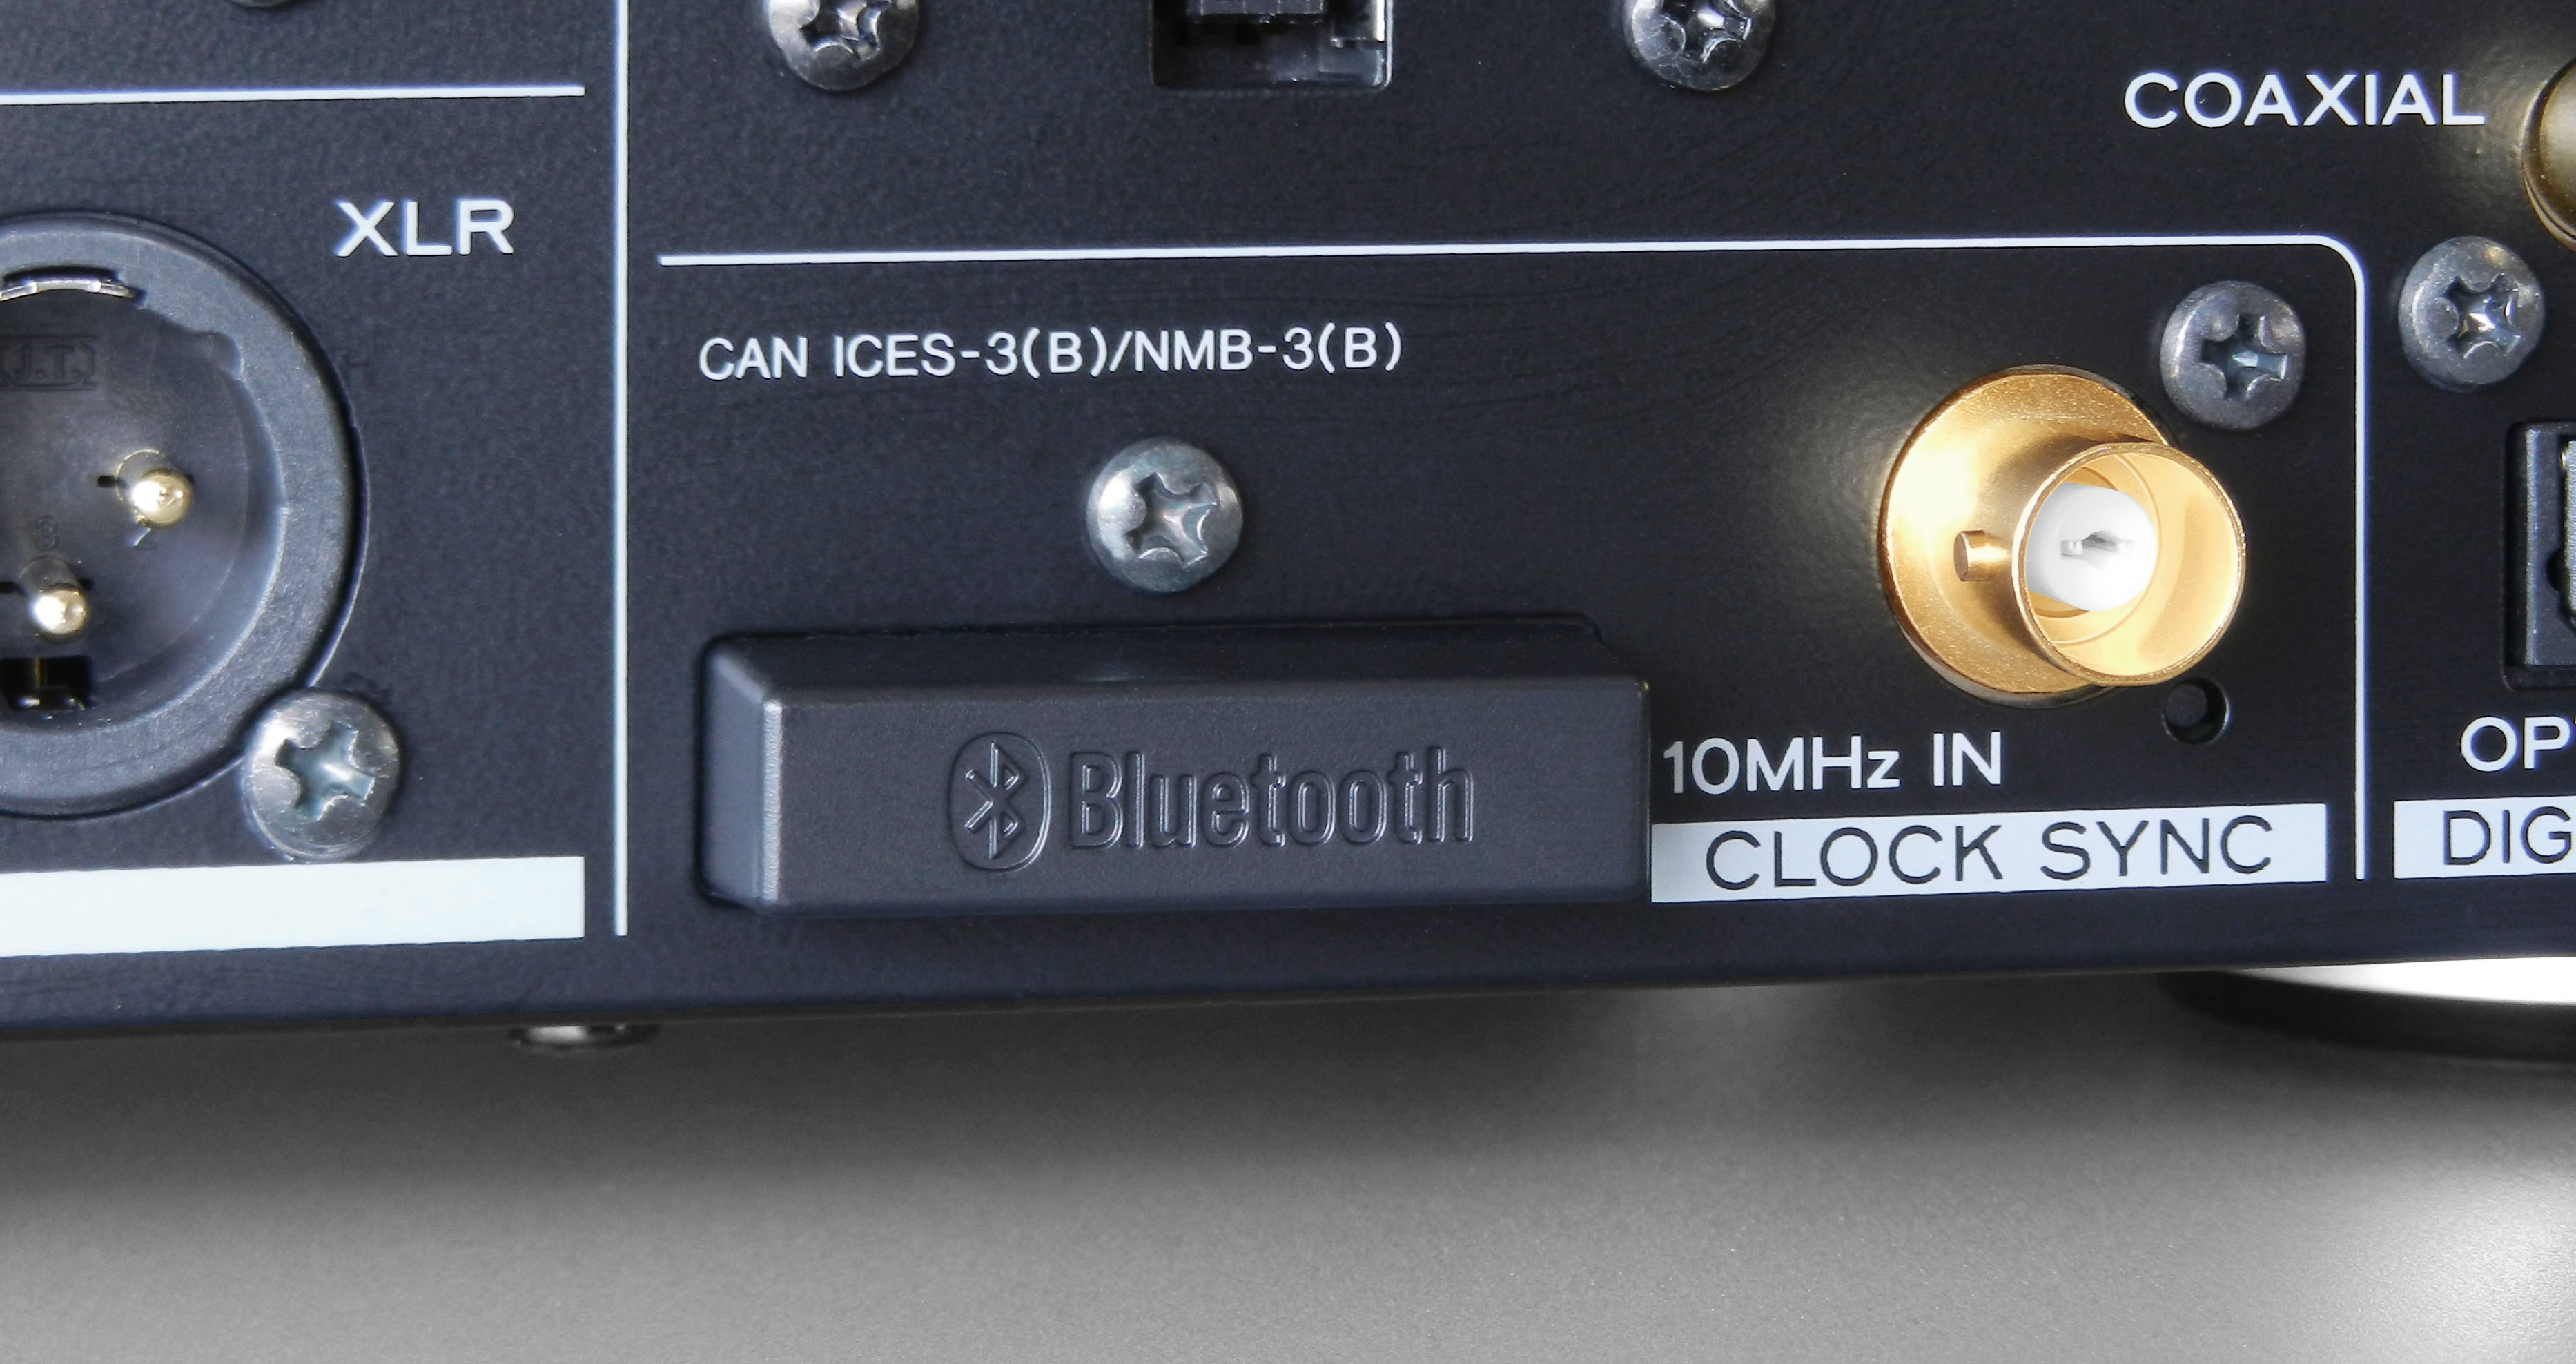 NT-503_Bluetooth_Clock_N9999x9999.png